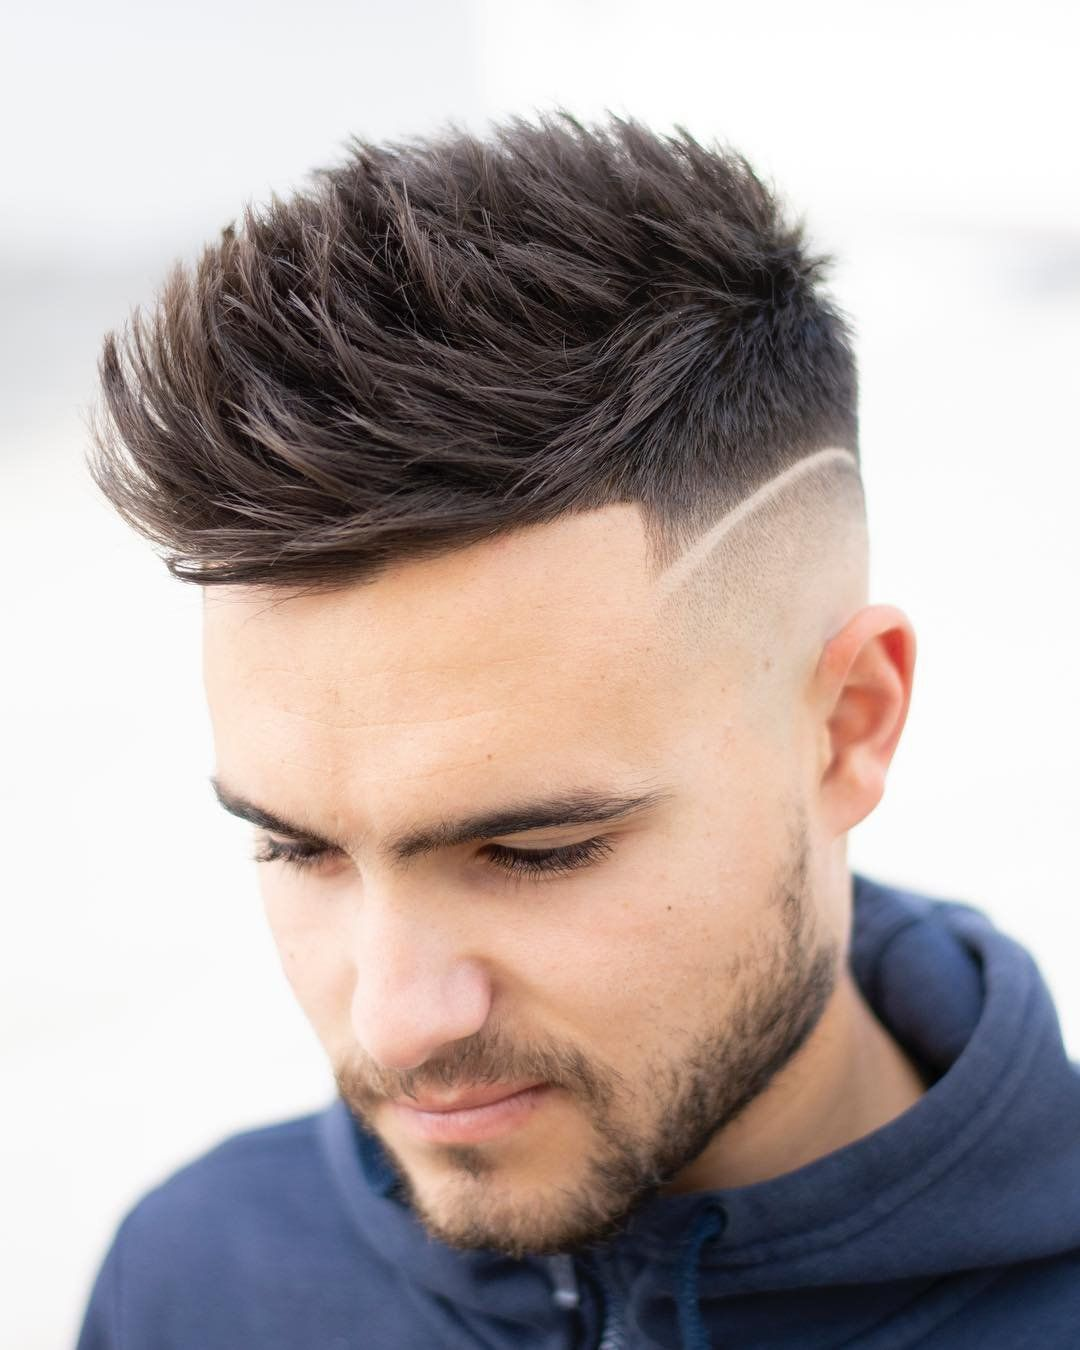 Top 13 Irresistible Hairstyles For Men Mens Hairstyles Short Men Haircut Styles Haircuts For Men